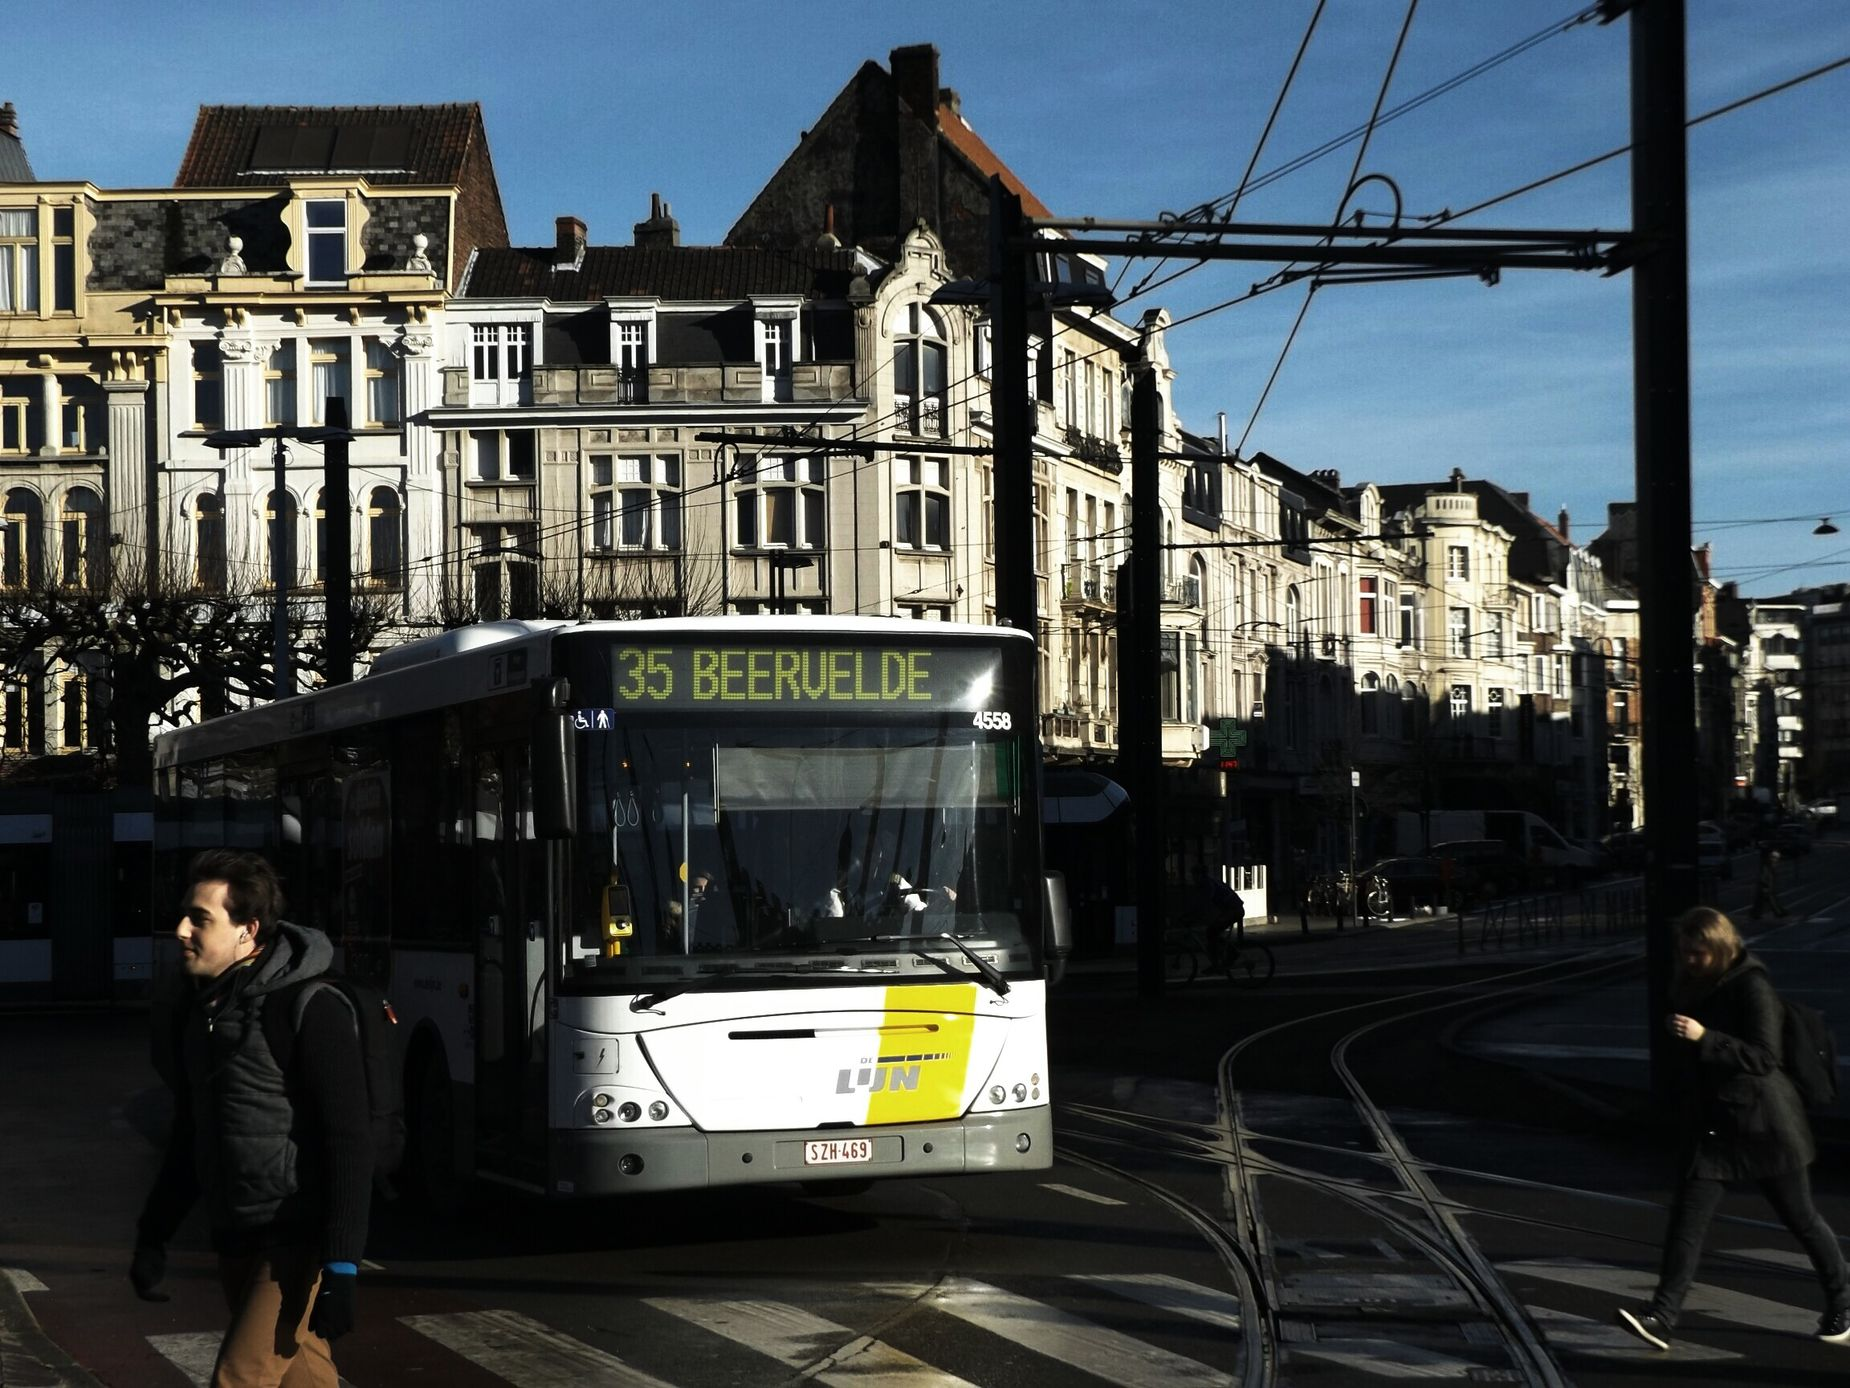 Streetphotography Shadows & Lights Everybodystreet Architecture Tramway Bus Blue SkyGhent Gand Gent, Belgium